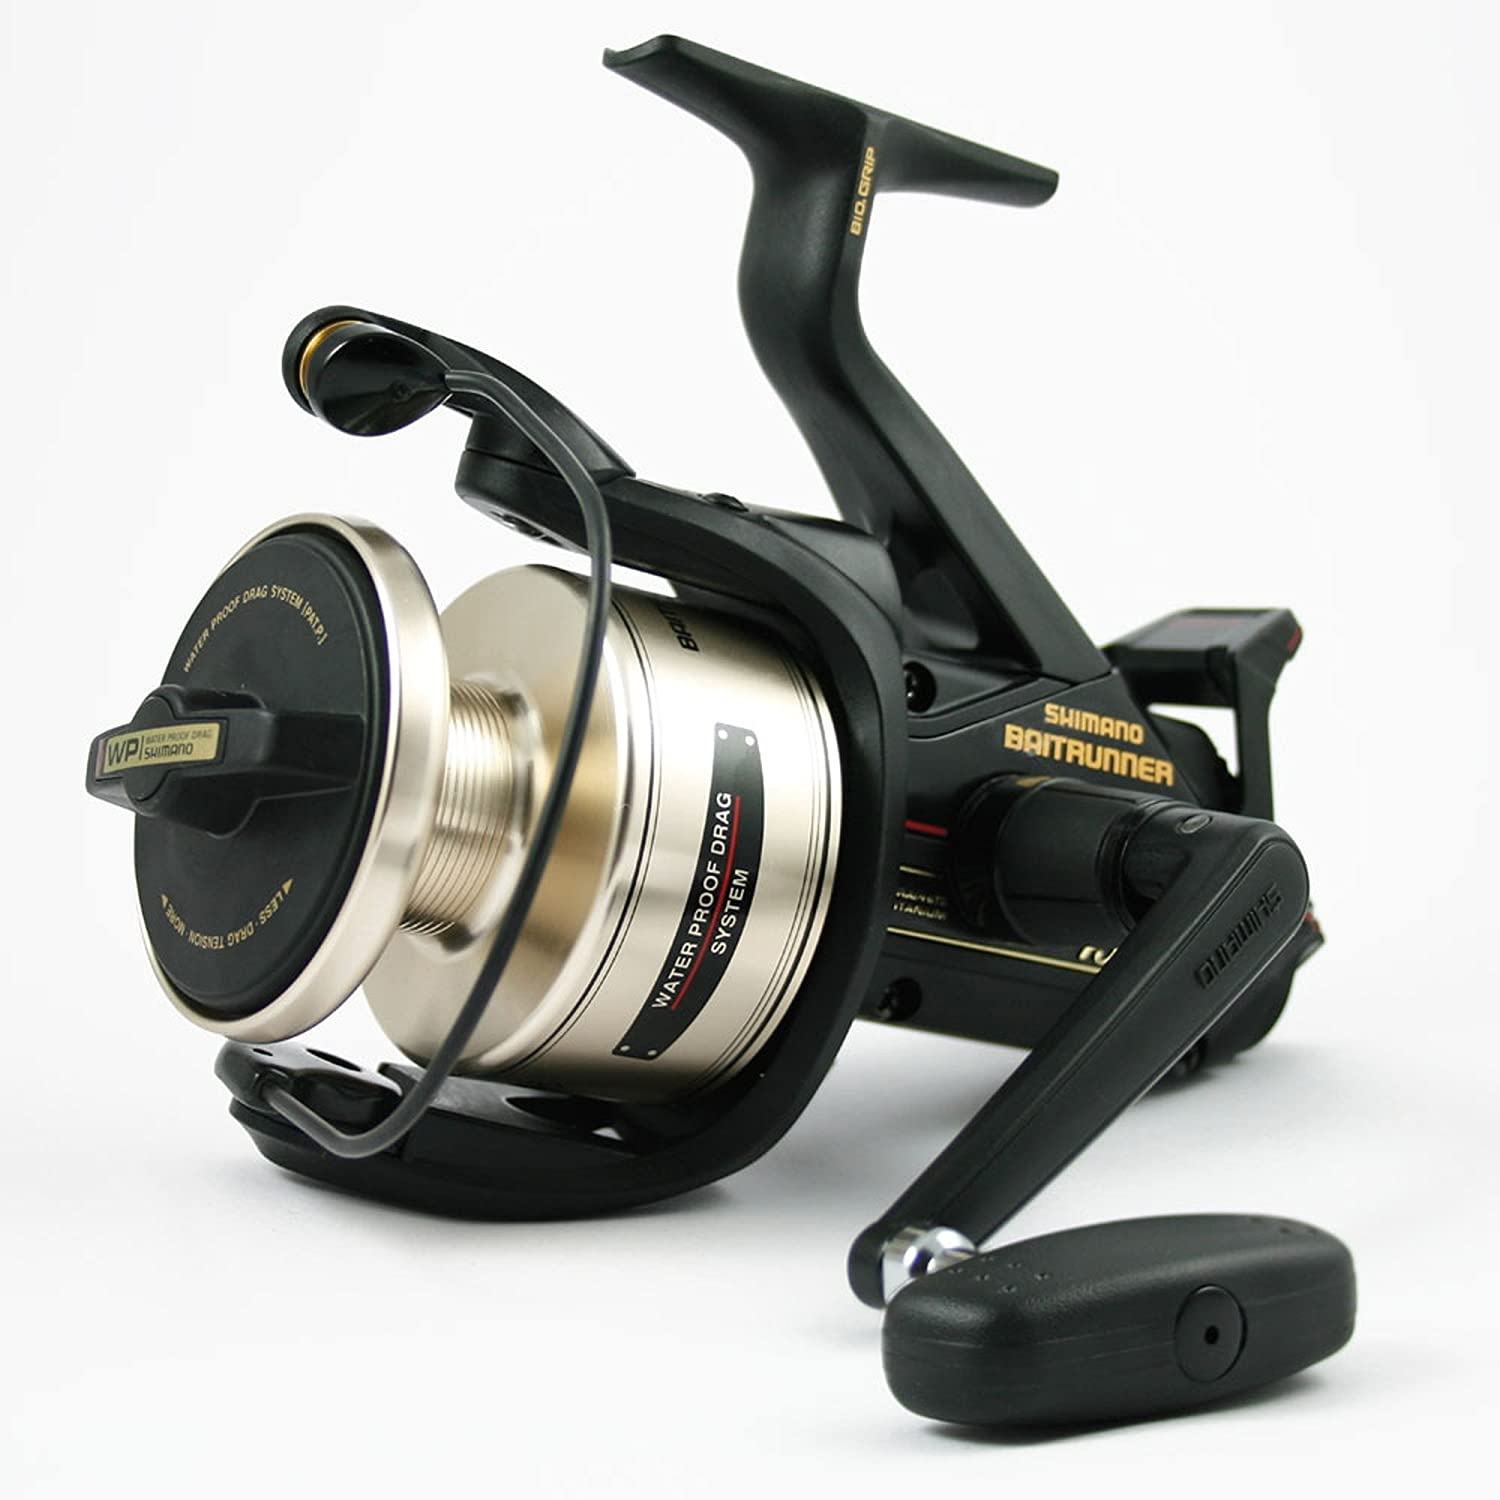 Baitrunner 6500 Spool Support /& Washers USED SHIMANO SPINNING REEL PART